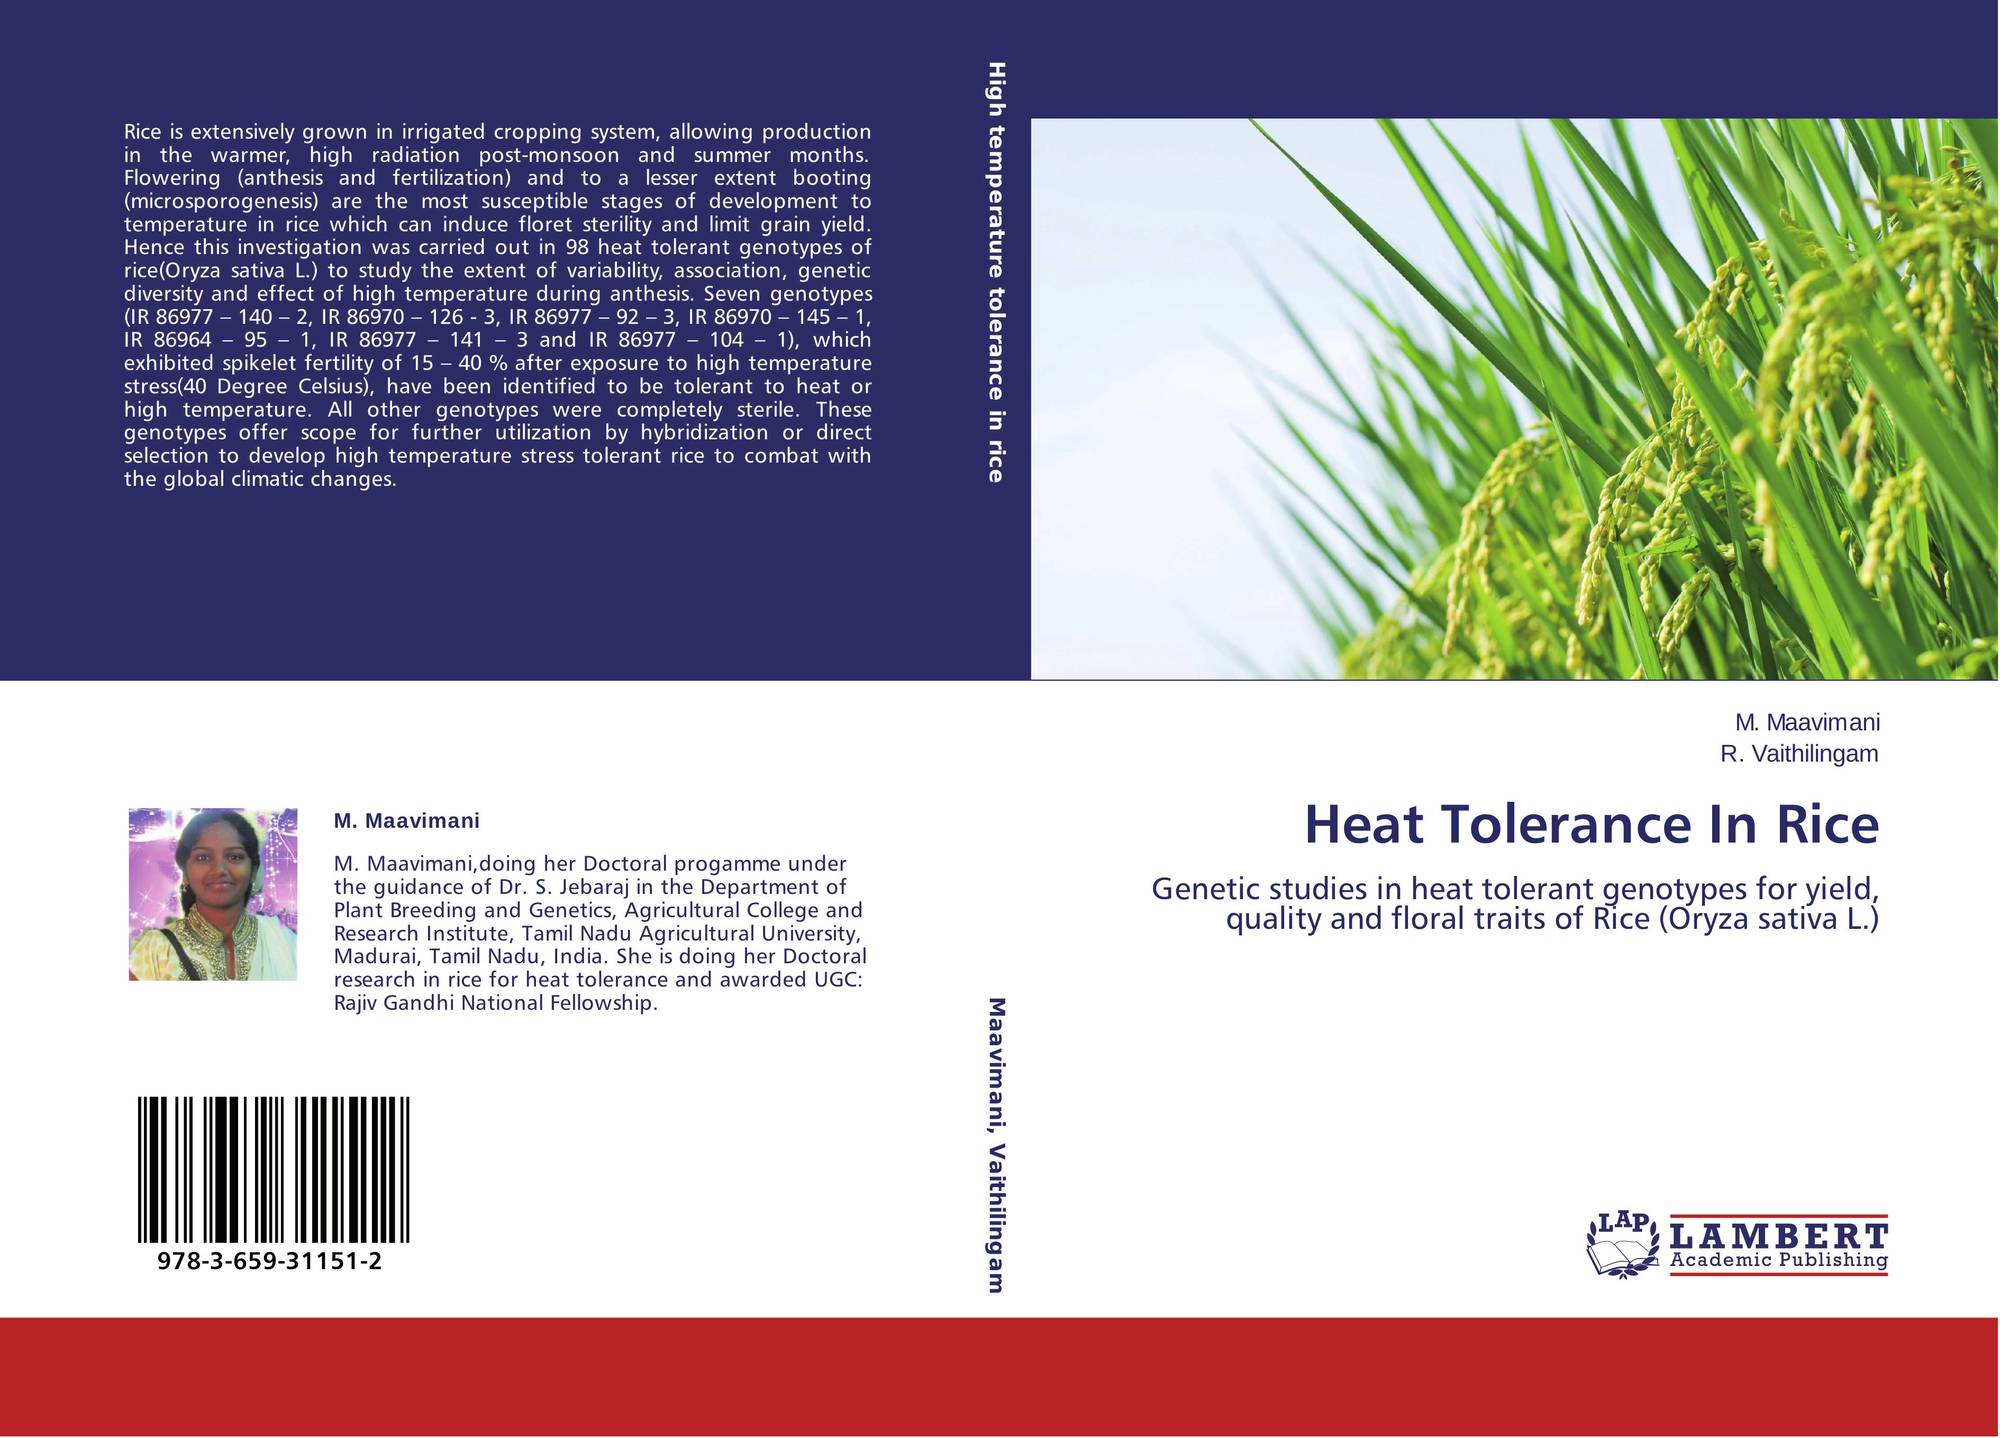 genetic analysis of heat tolerance at anthesis on rice These lines are a good genetic resource for basic and applied studies on heat tolerance in rice and craufurd, p (2010a) genetic analysis of heat tolerance at anthesis in rice crop contrasting responses to heat stress at gametogenesis and anthesis crop sci 55, 589-596 doi: 10.